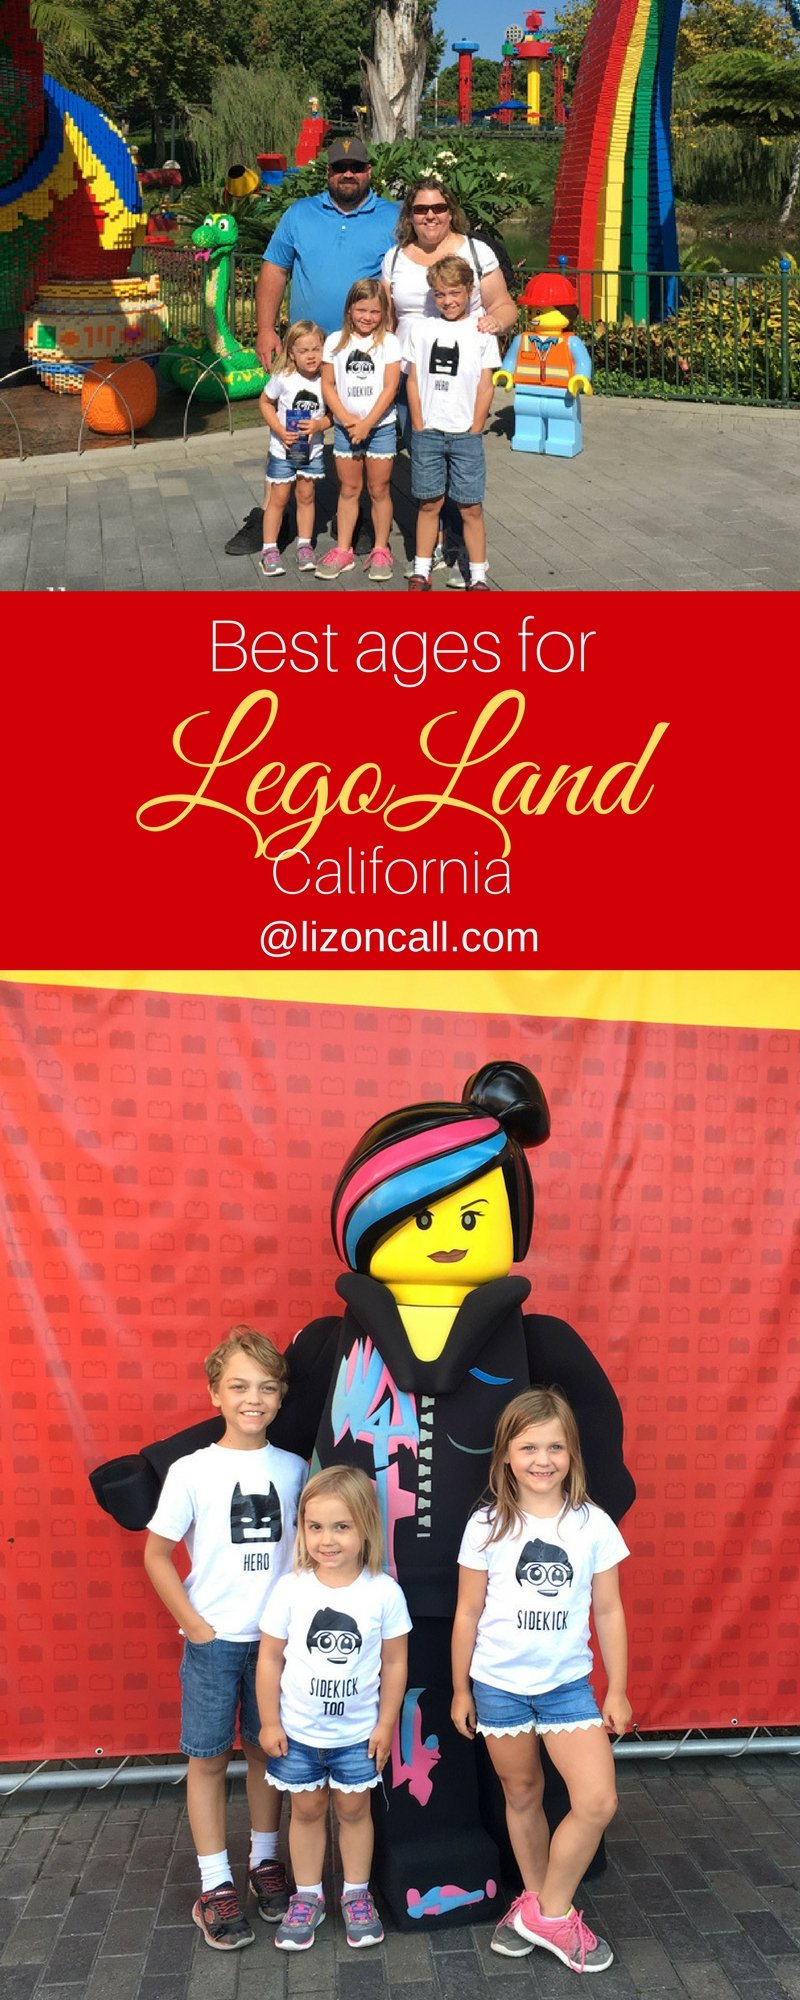 Planning a vacation for the family to Legoland?  Before you head to the park, make sure you know the best ages for Legoland California.